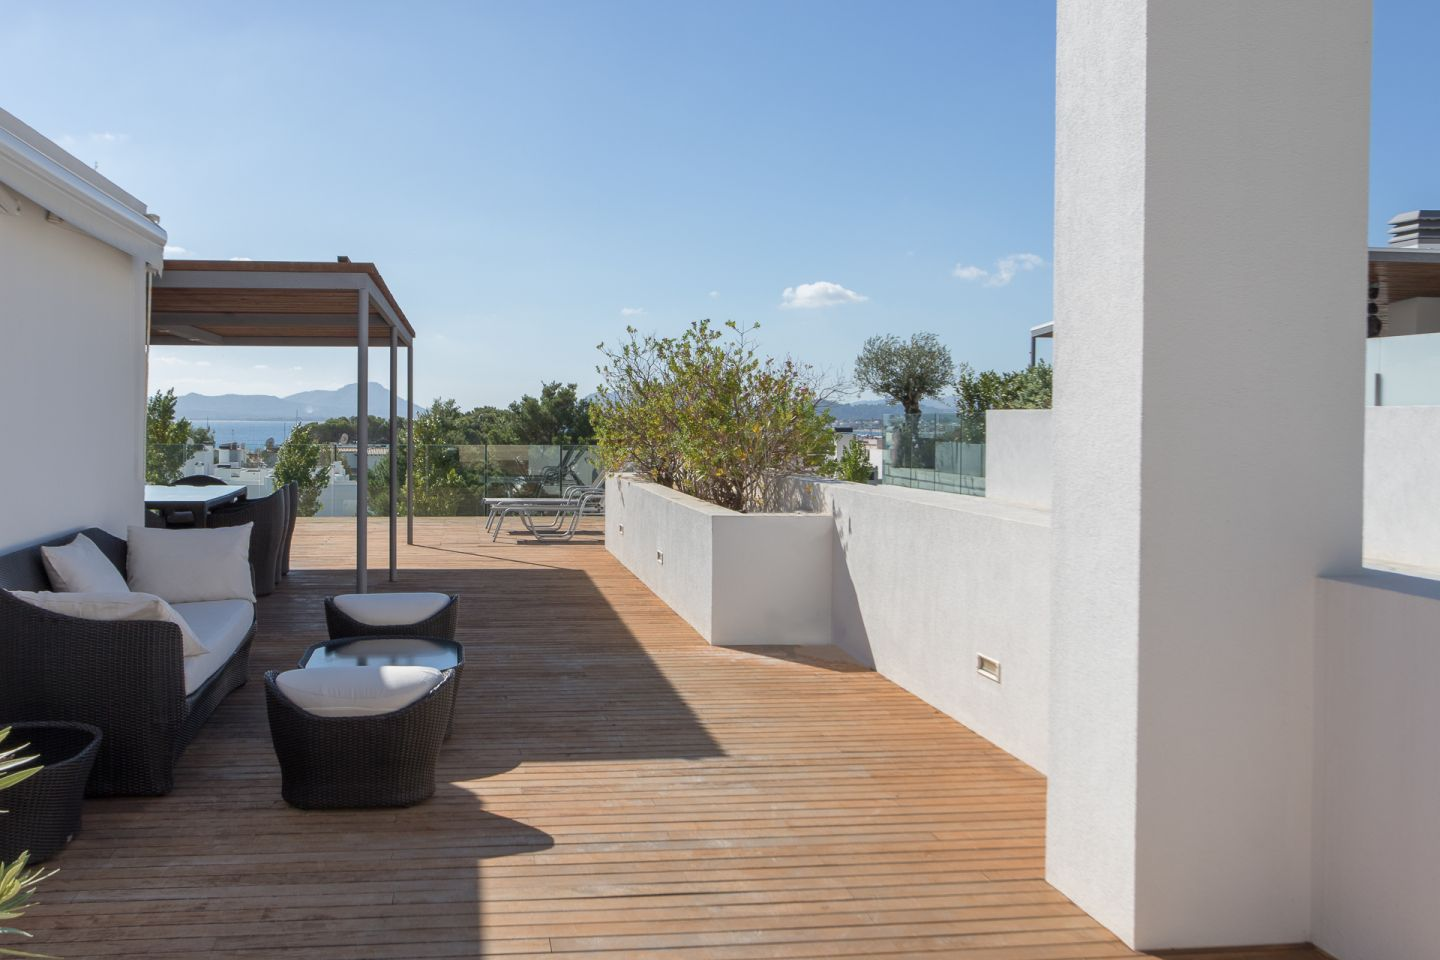 4 Bed Penthouse for sale in PUERTO POLLENSA 15